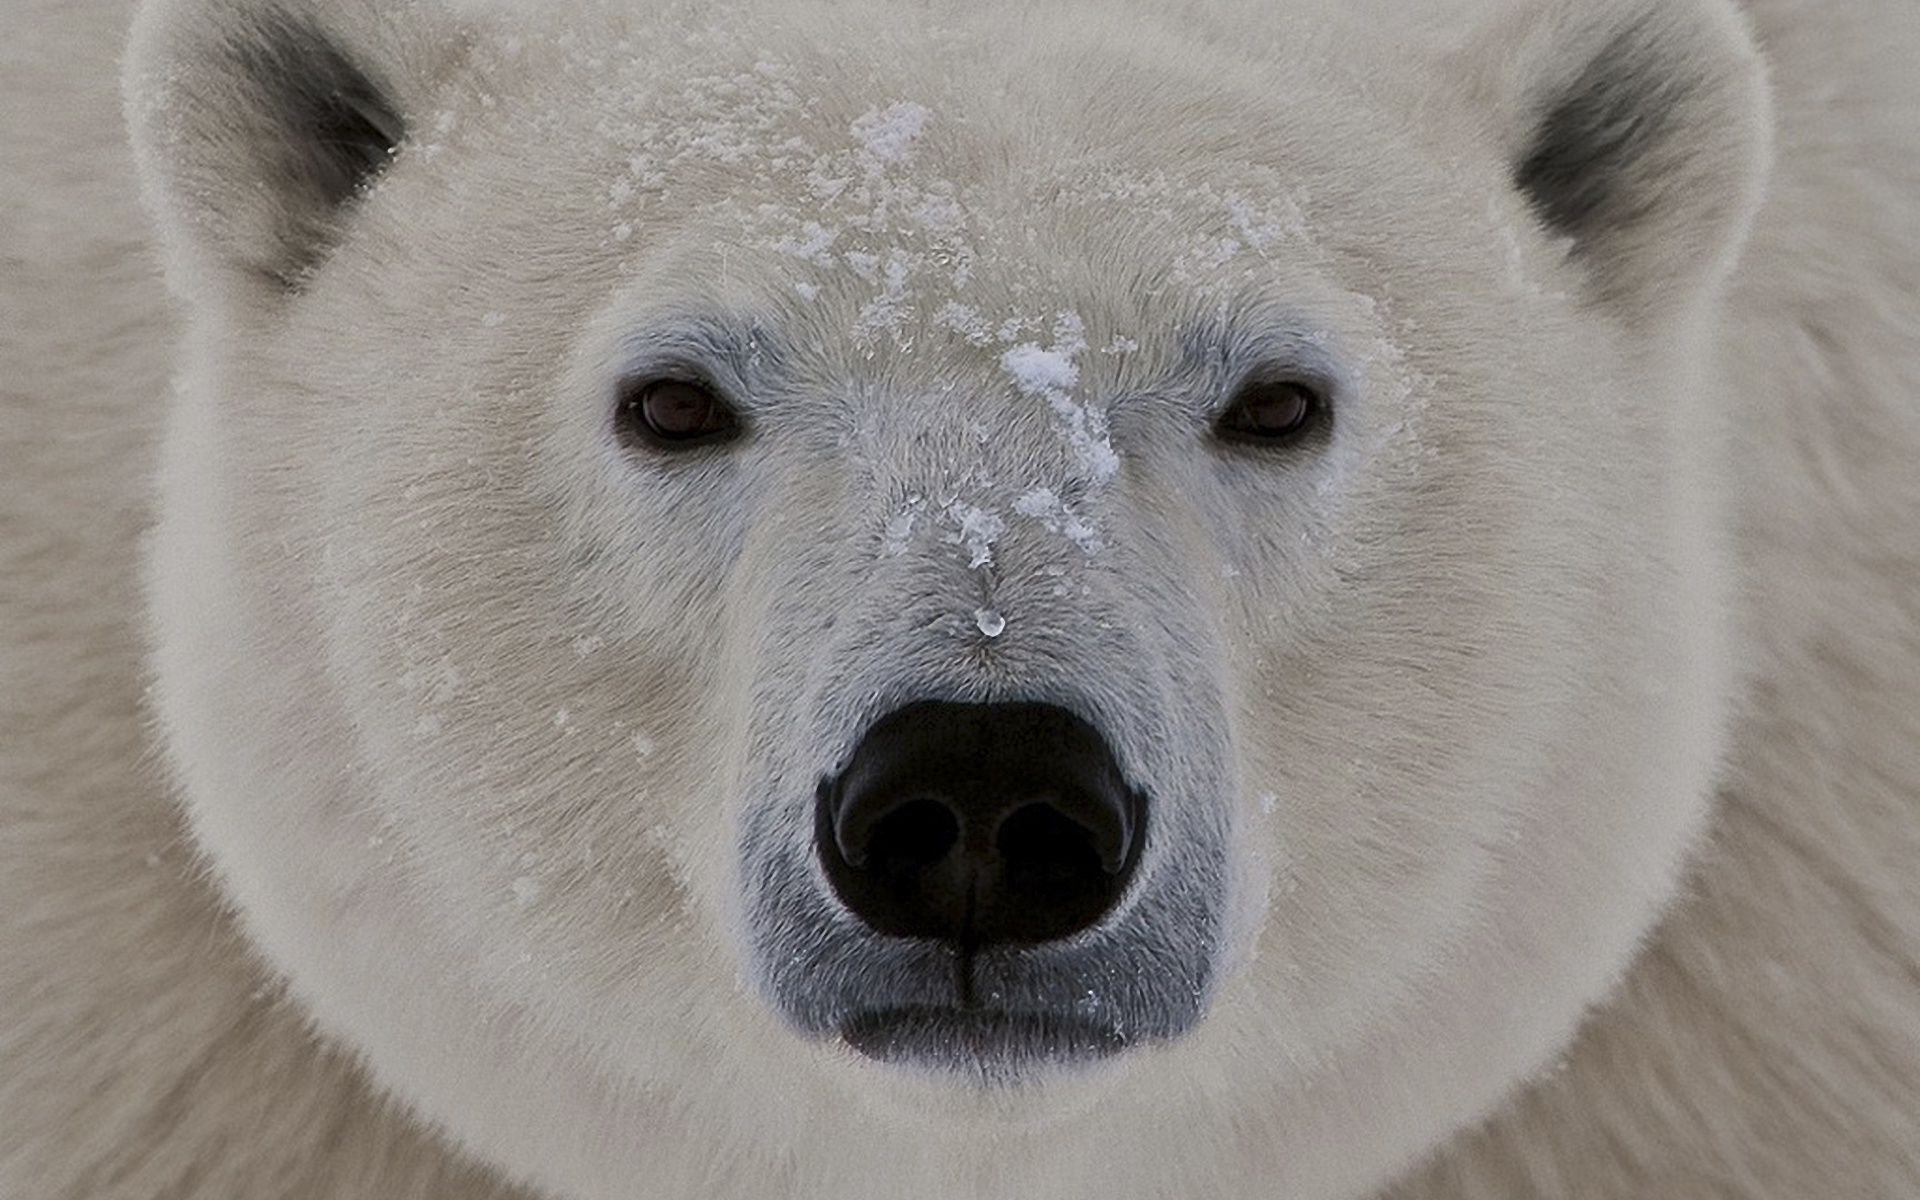 the muzzle of the polar bear closeup